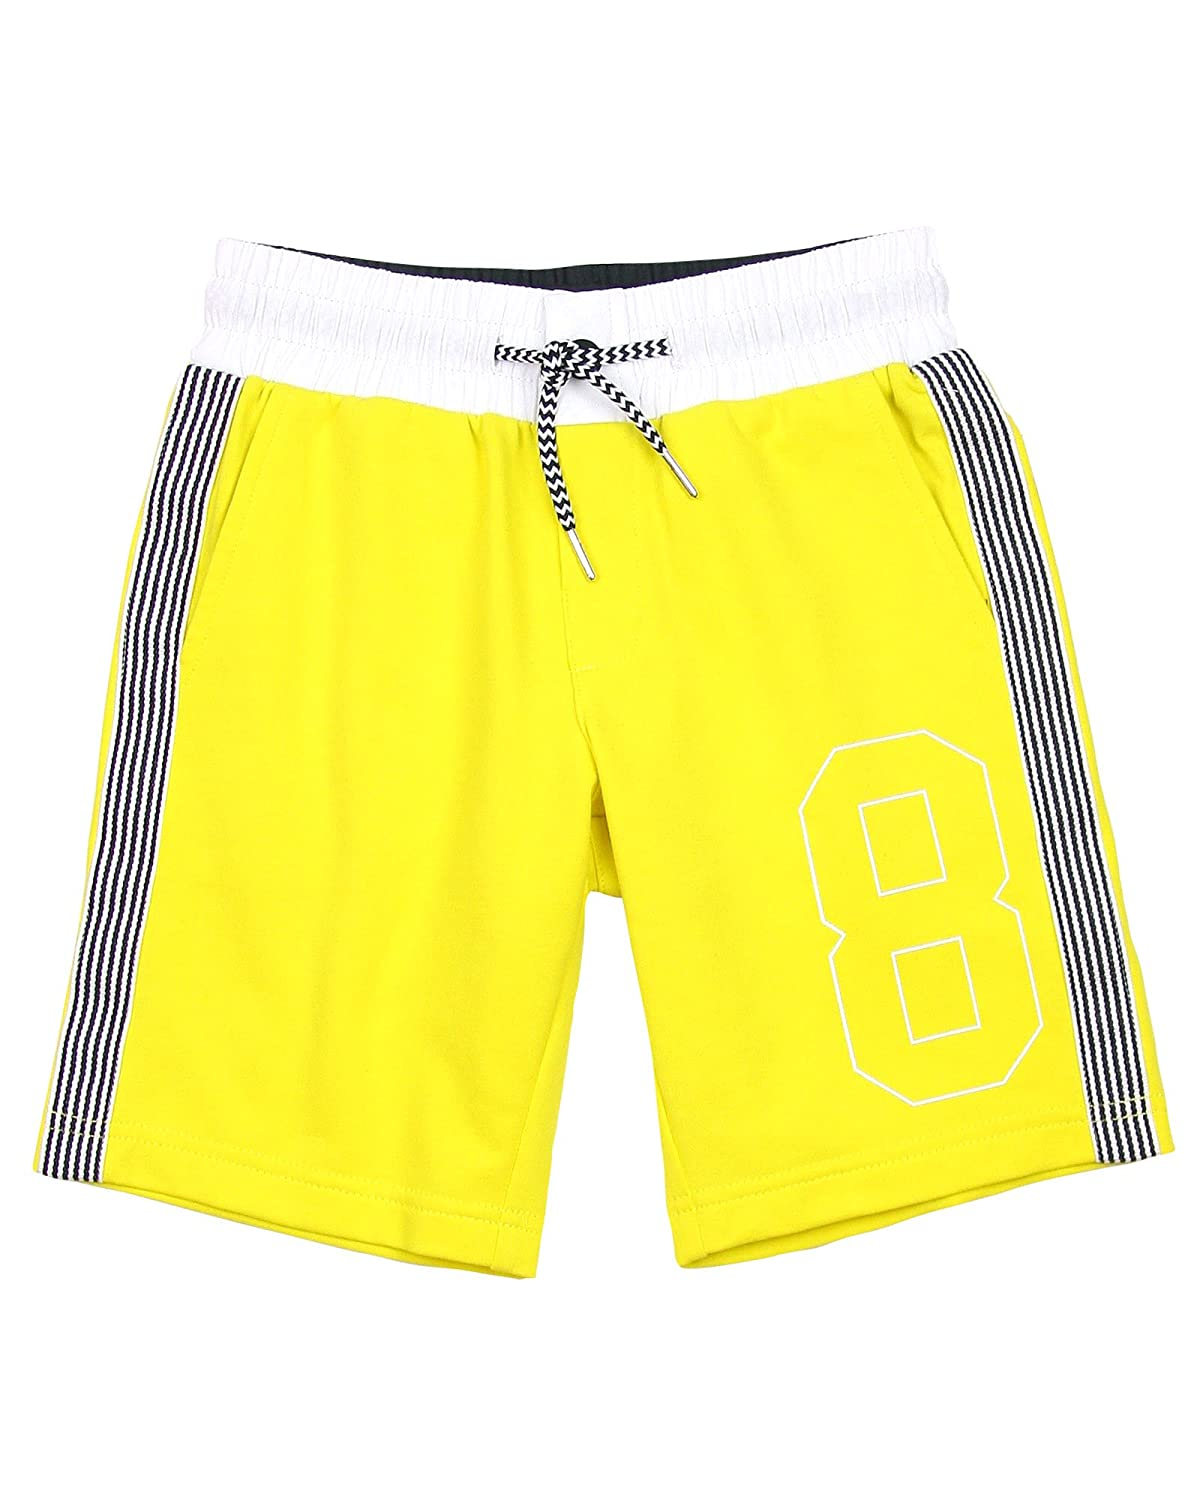 Sizes 8-16 Mayoral Junior Boys Terry Shorts with Stripes Yellow